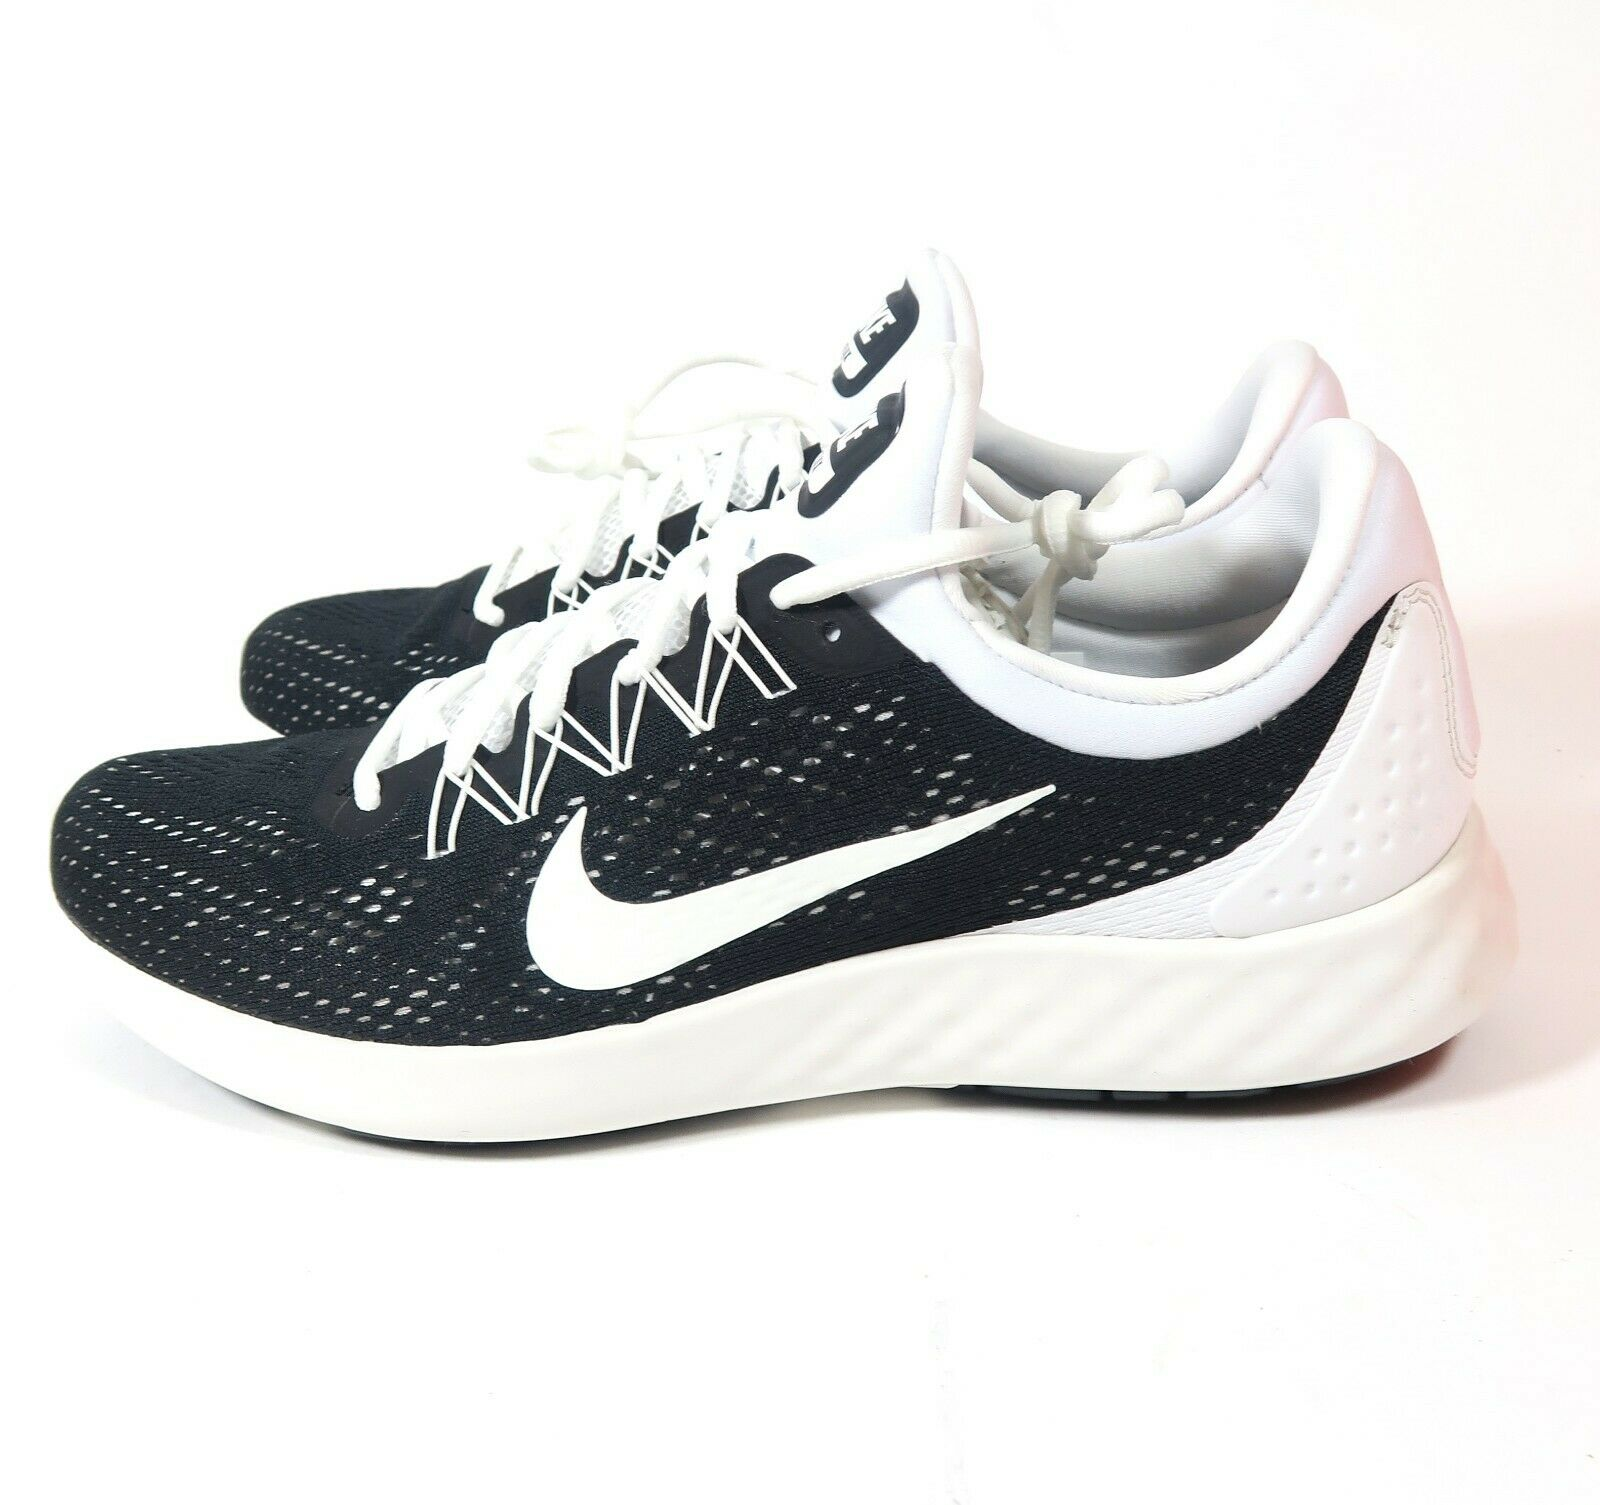 new product a17be 6b15f Men s Nike Lunar Skyelux H shoes 889270 889270 889270 001 Mult Sizes Black  Sumit White 09be8a